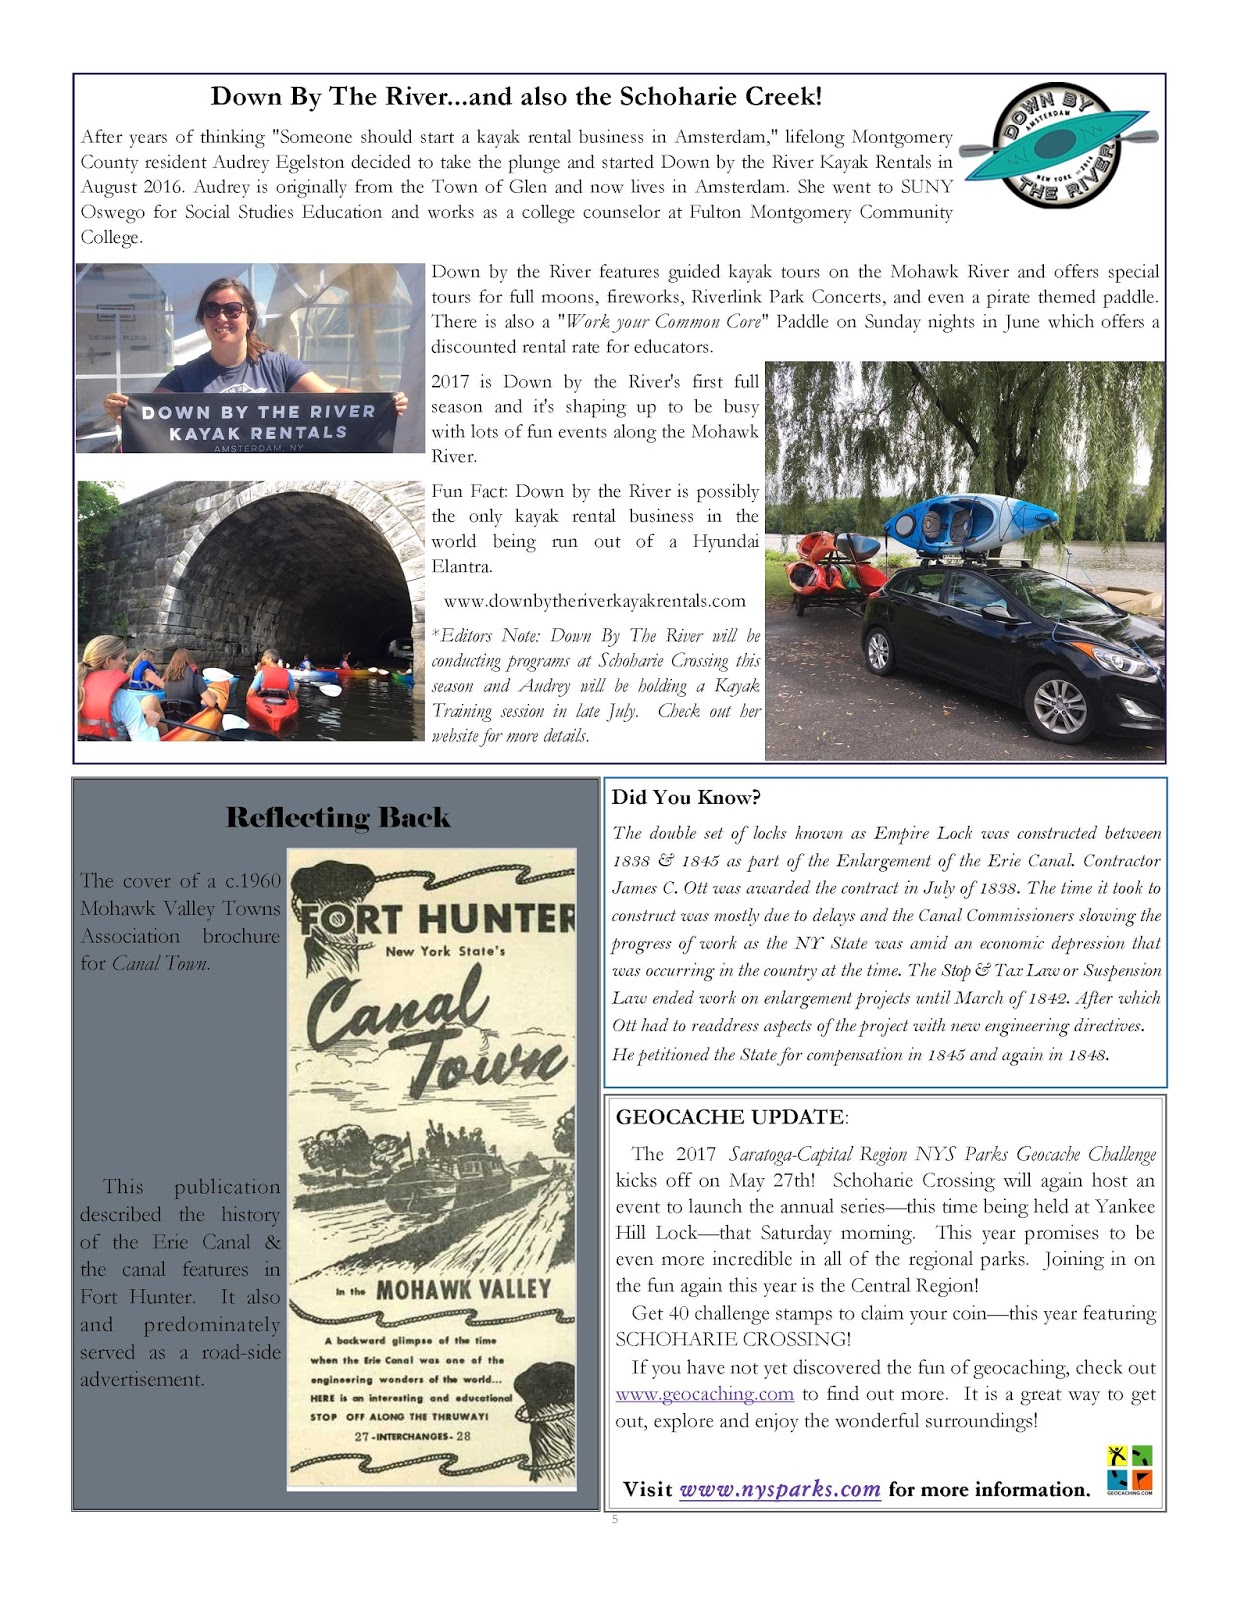 Friends of schoharie crossing spring 2017 newsletter click image to view larger sciox Images